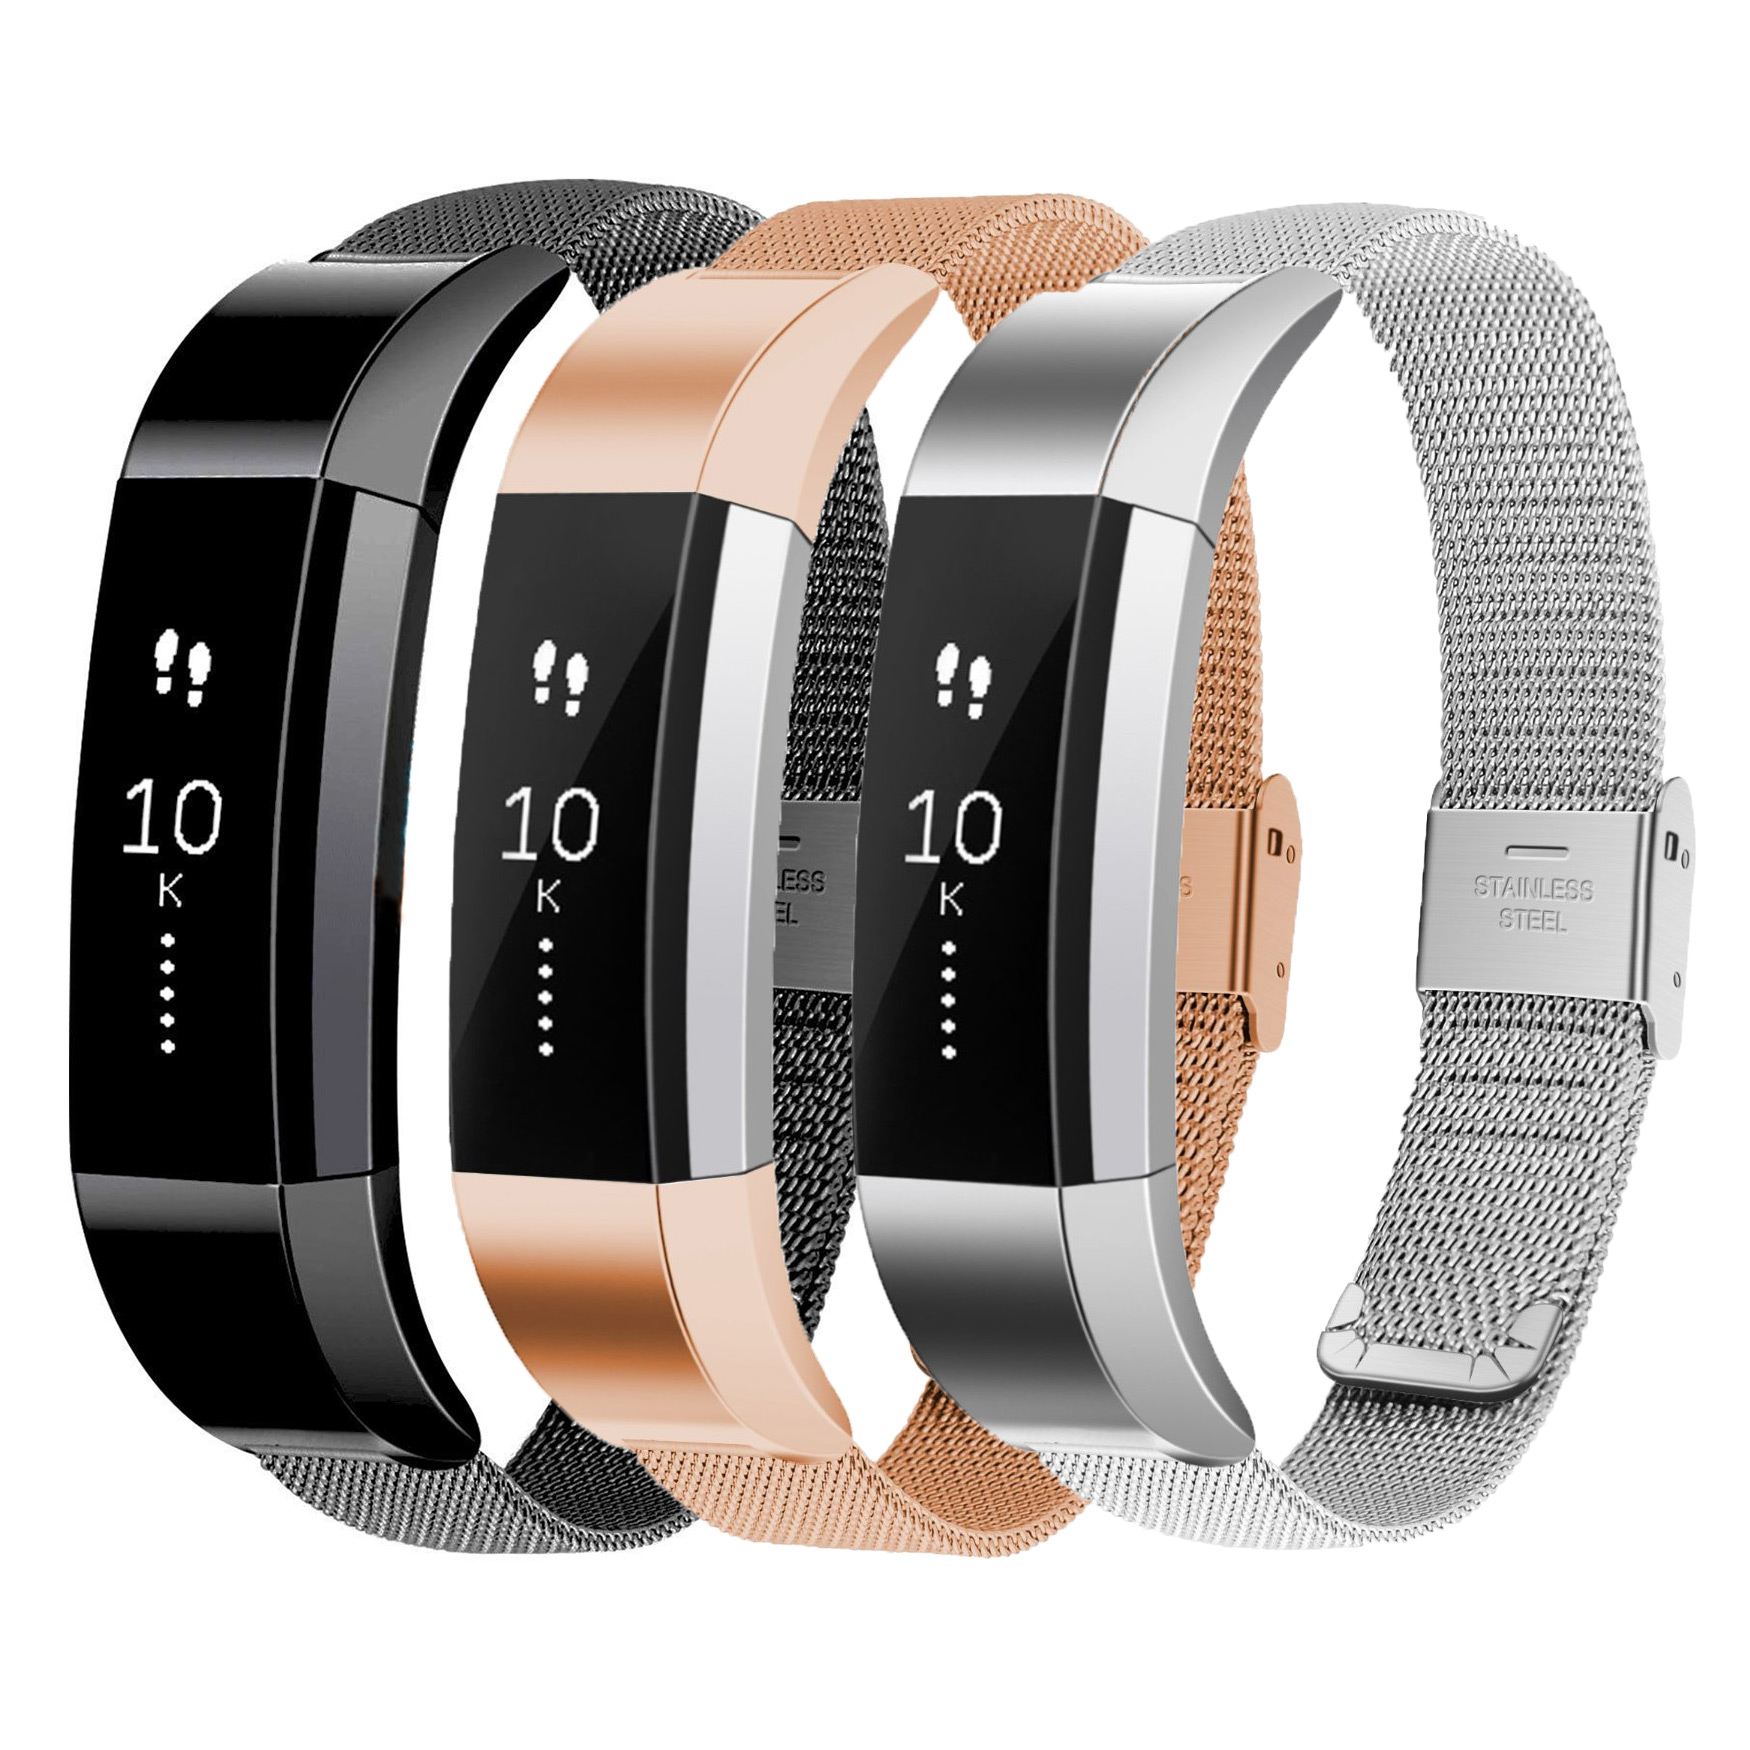 Stainless Steel Milanese Loop Bracelet Replacement Watch Band For Fitbit Alta Fitness Tracker